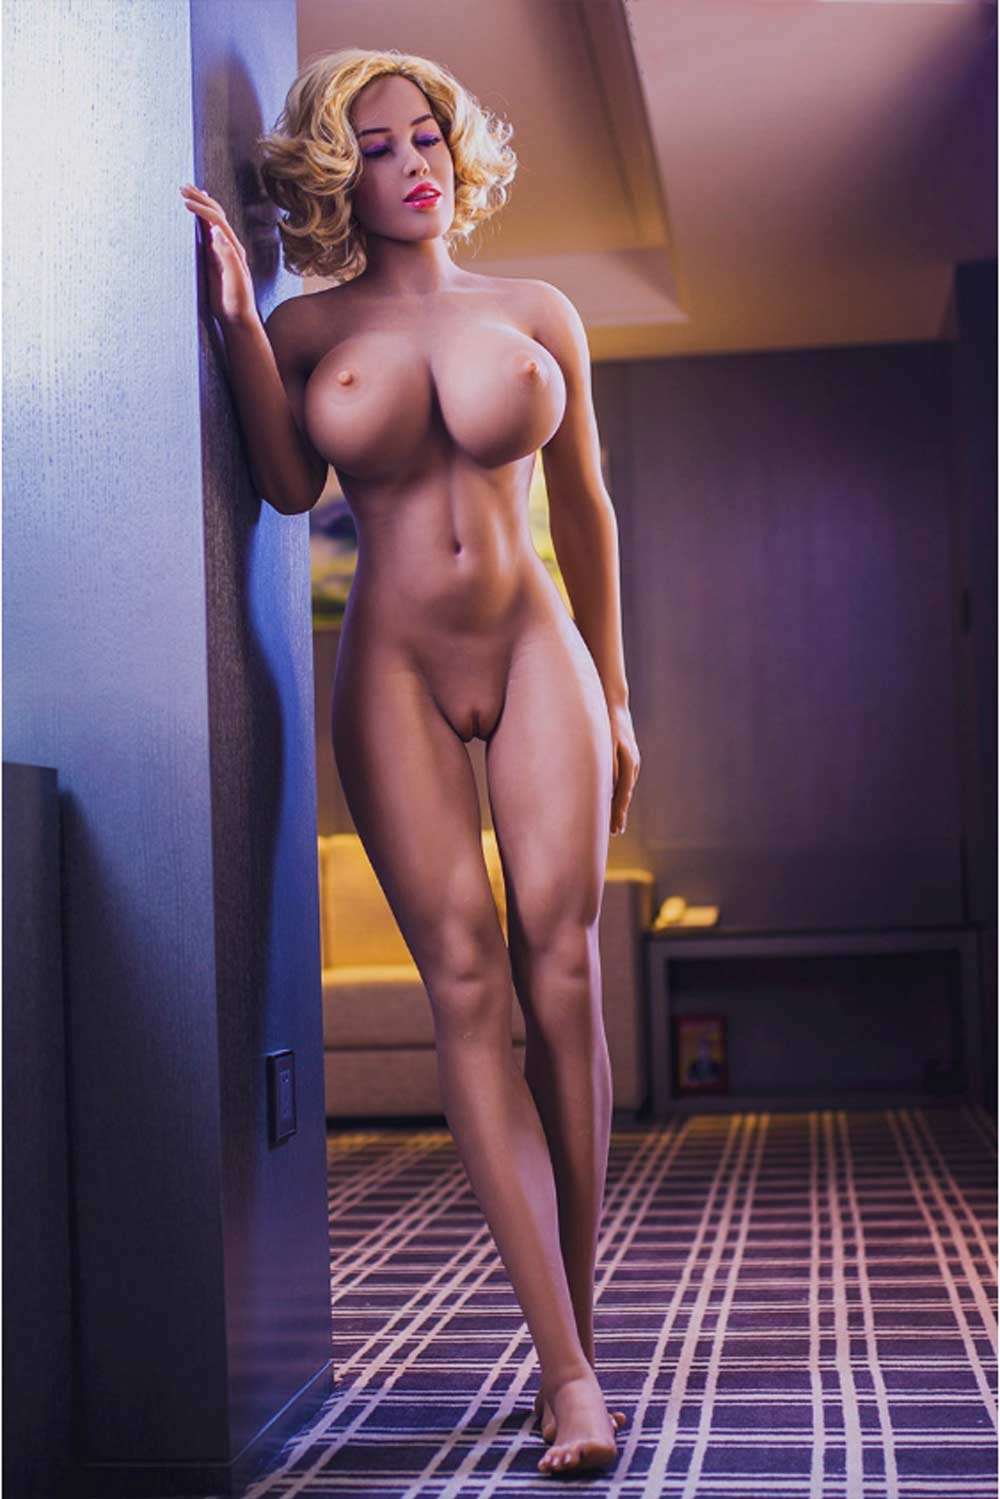 Big breasted sex doll holding on to the wall